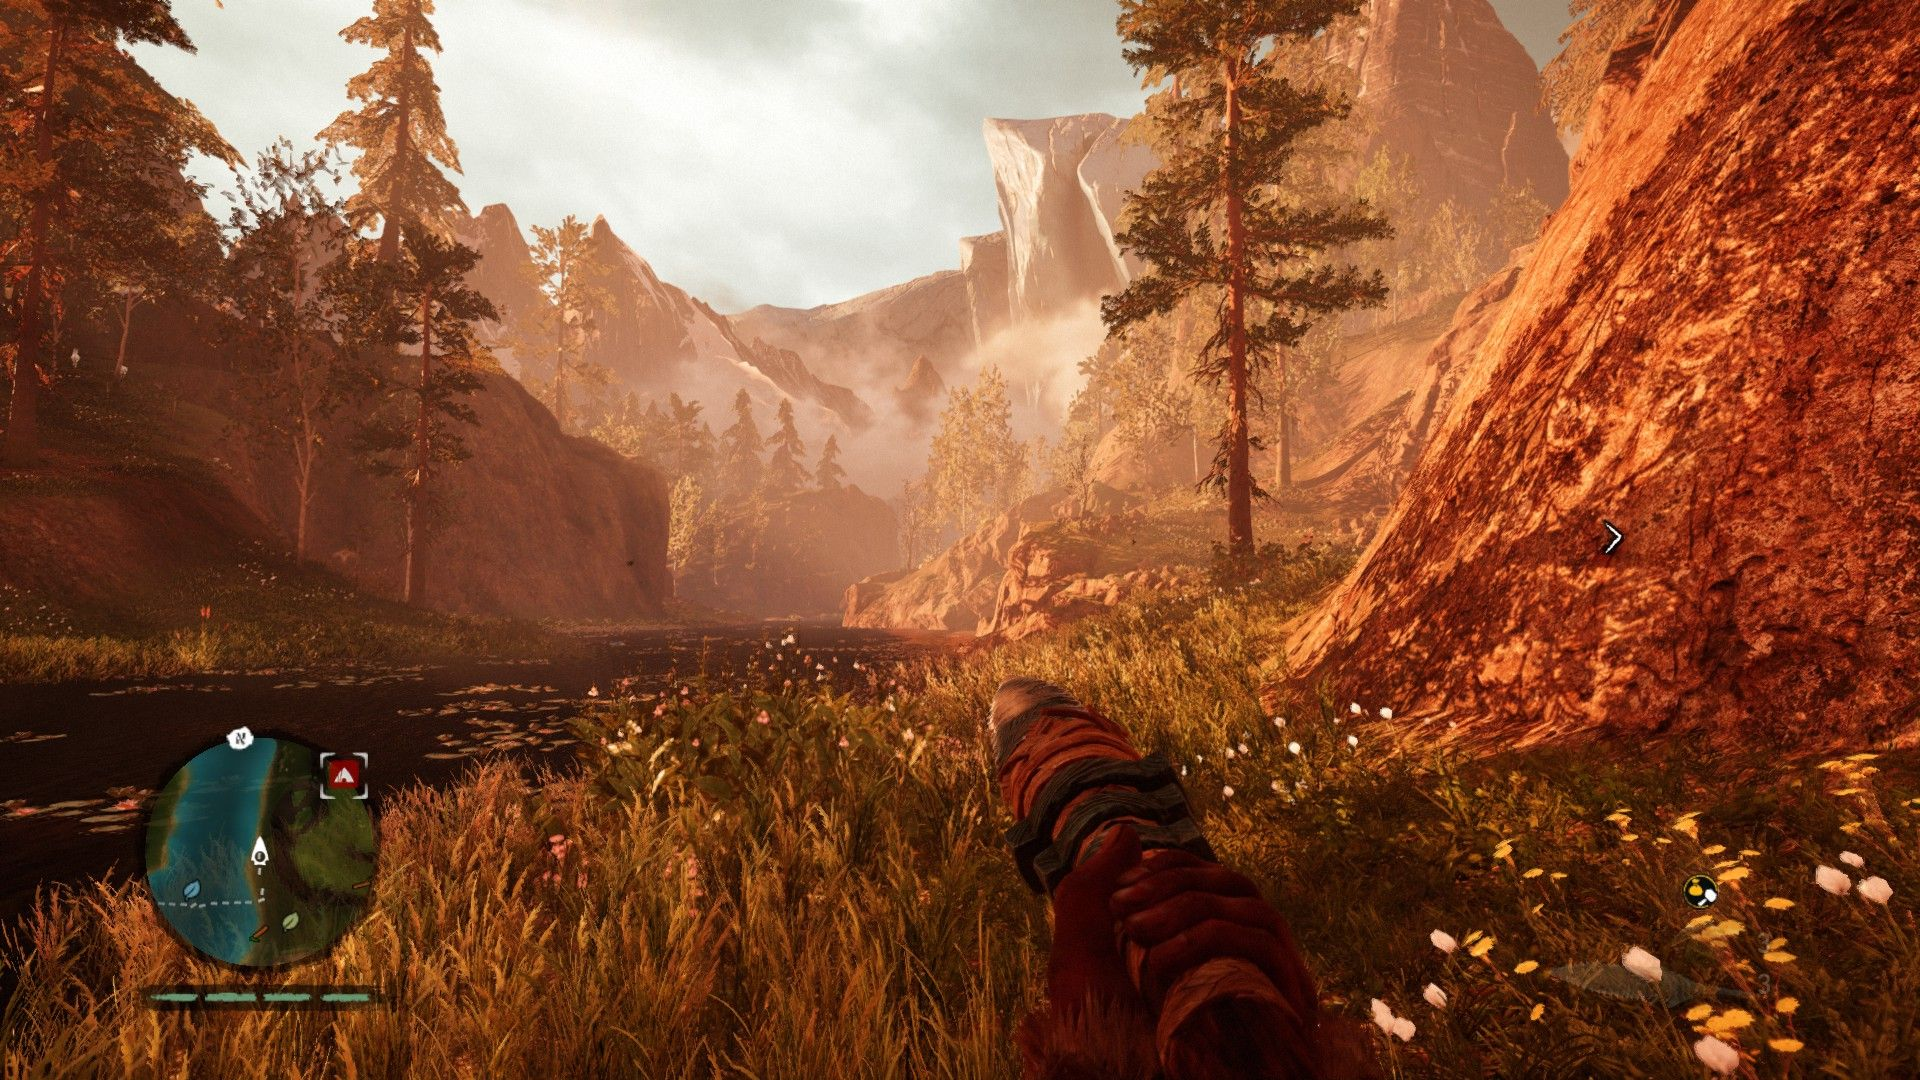 Far Cry Primal Screenshots Image 18433 New Game Network